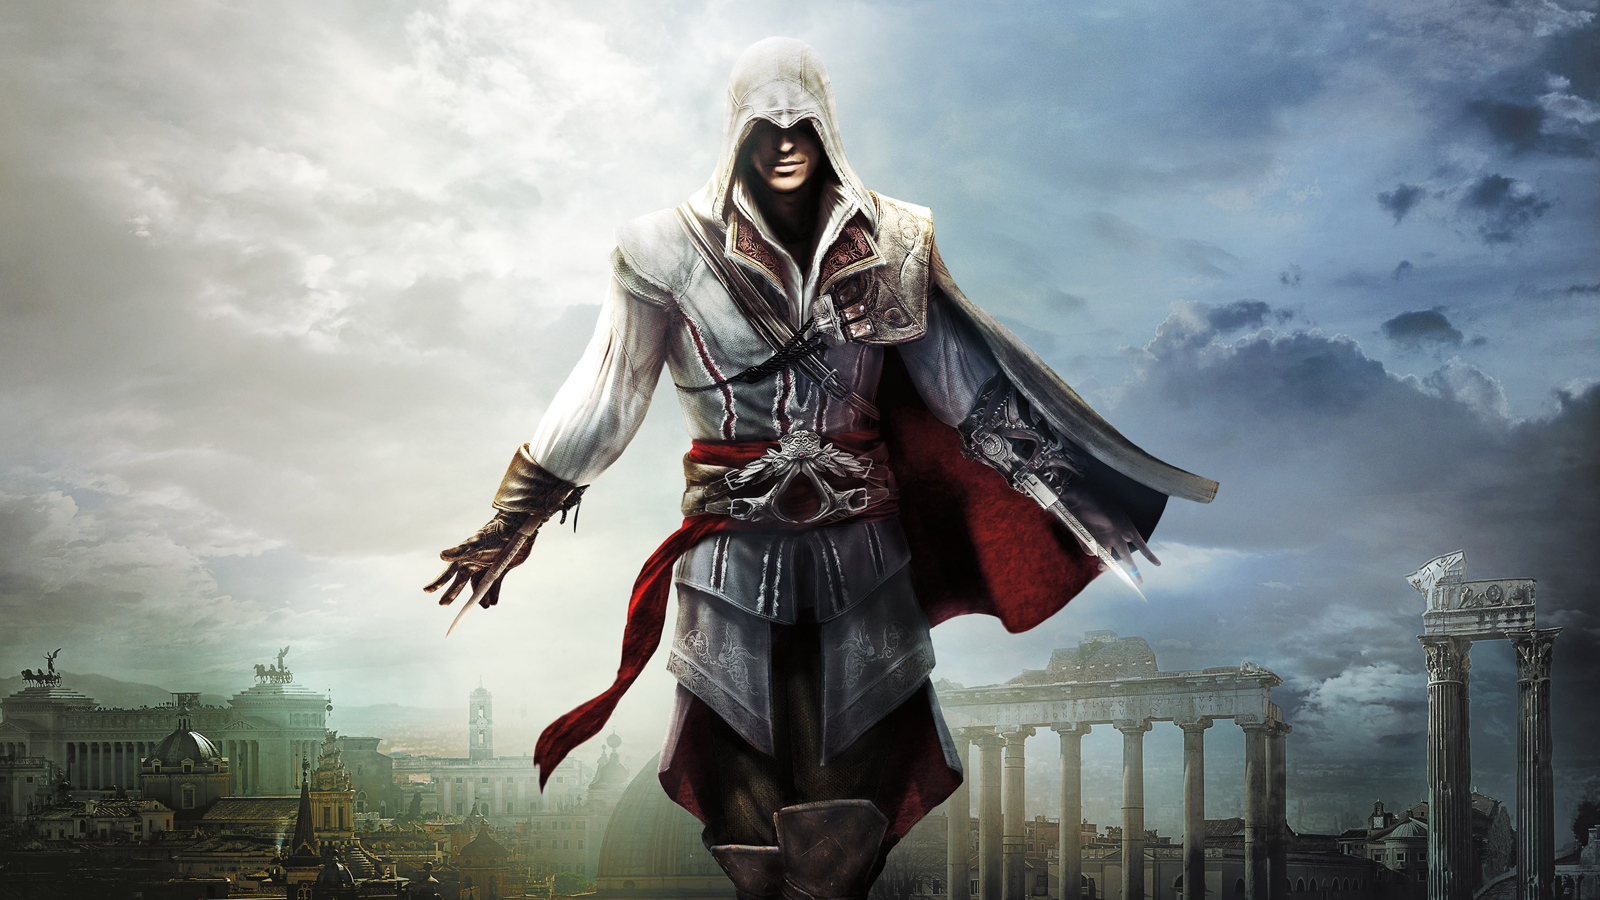 Producer Behind Netflix's Castlevania Show Also Working On Assassin's Creed Series